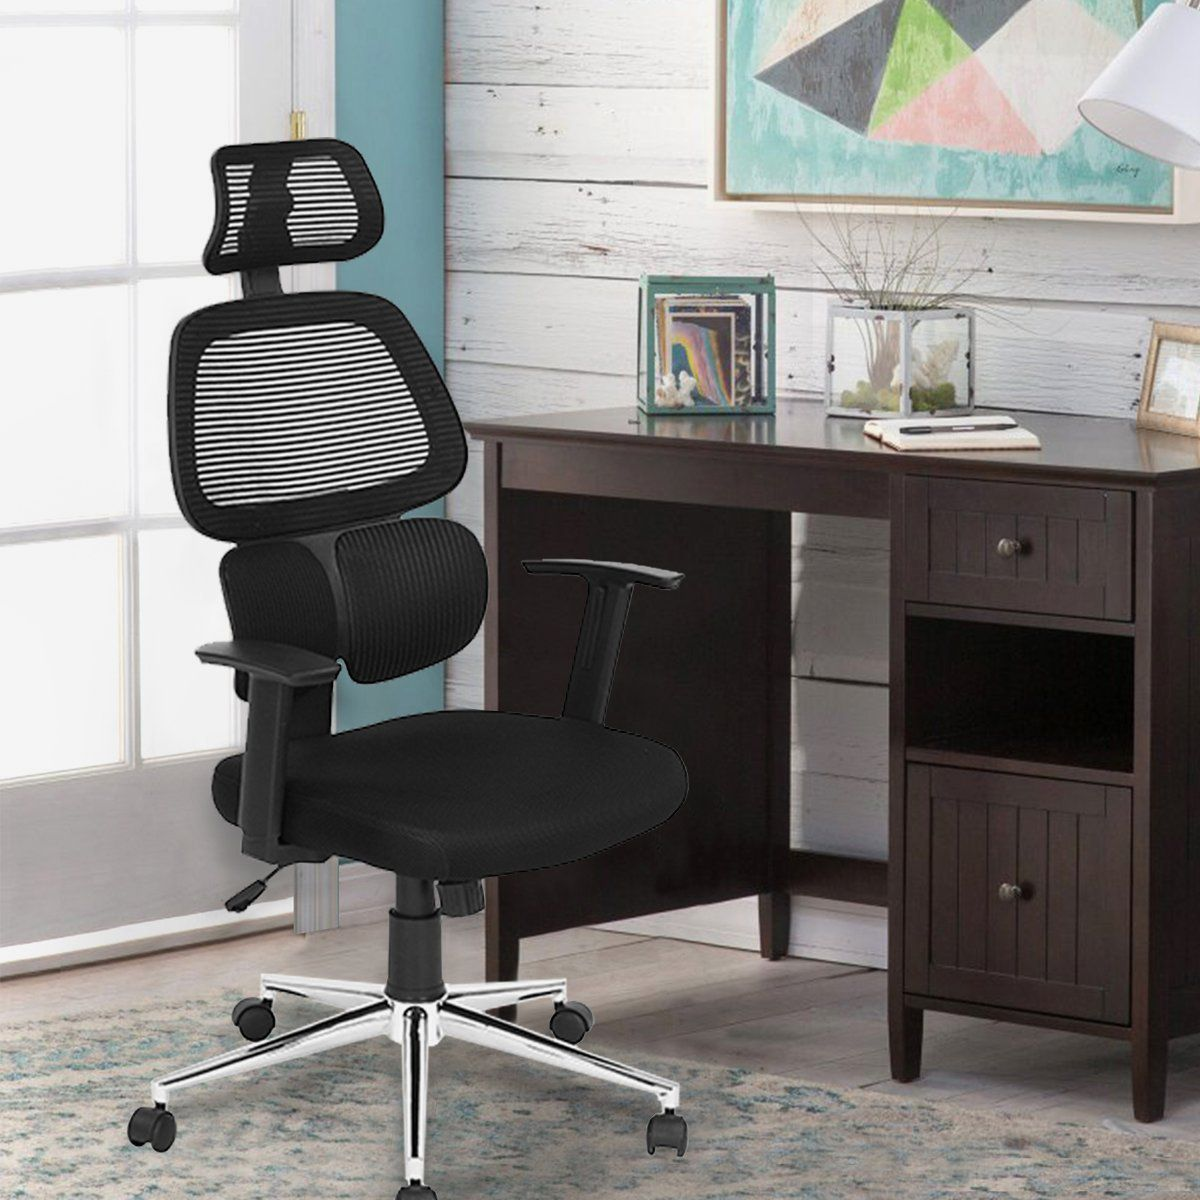 black ergonomic mesh office chair with adjustable lumbar support